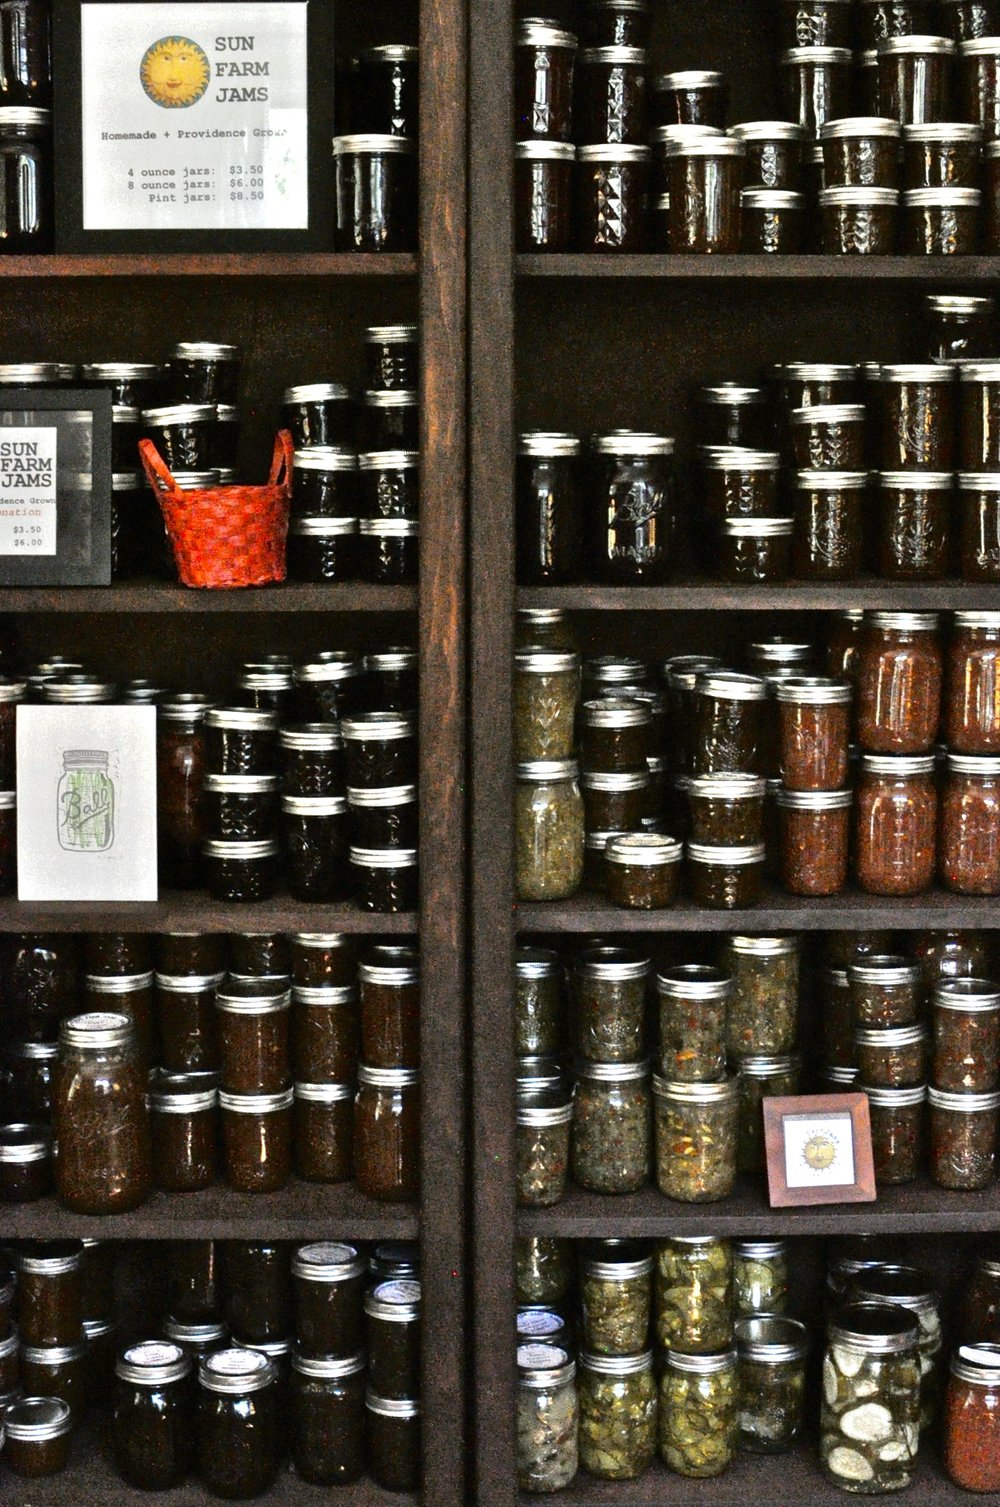 Sun Farm Jams, made from produce grown in the maker's Hammond Street garden Photo by Barbra Revill